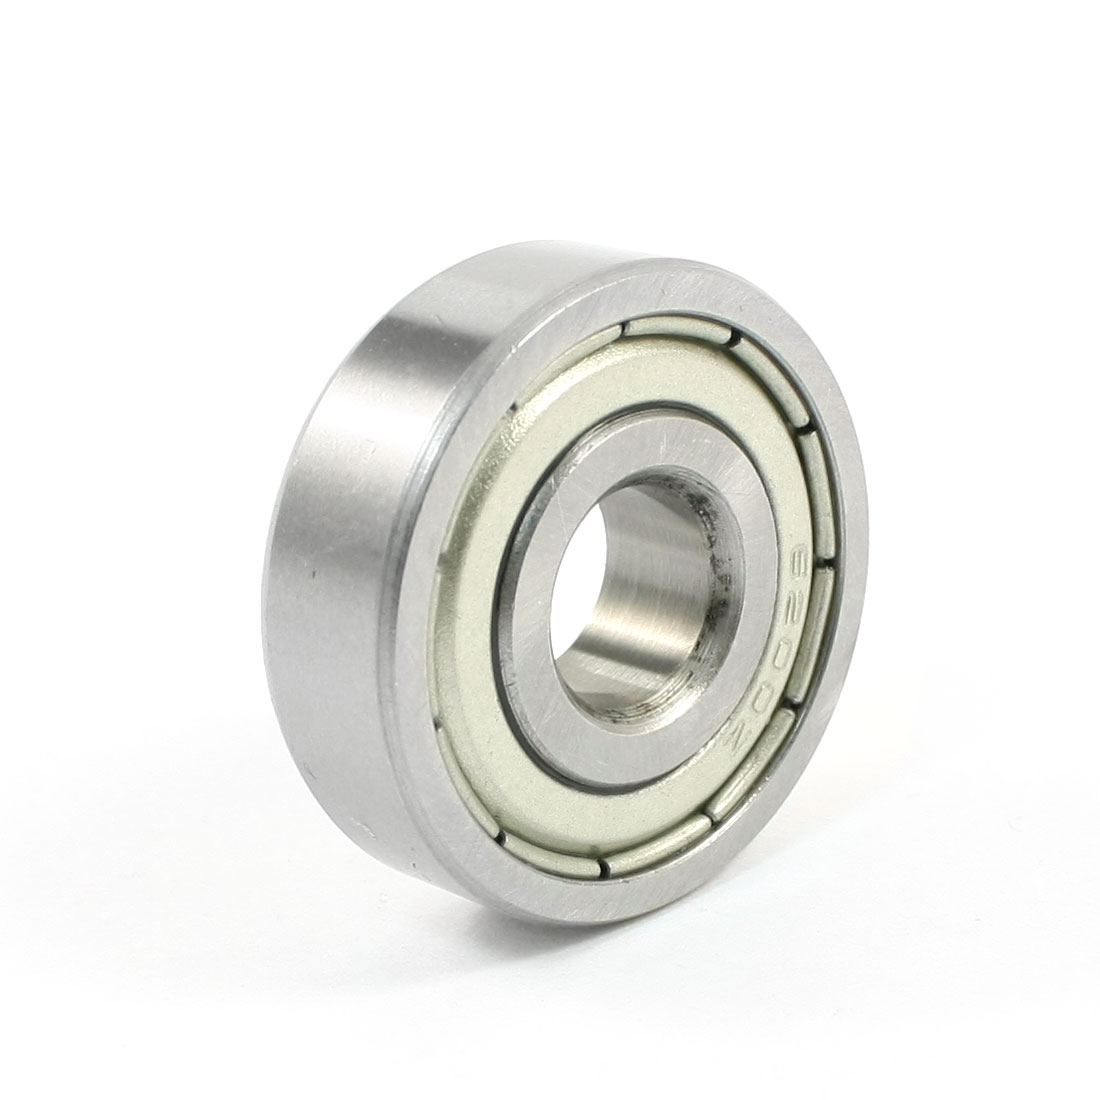 10mmx30mmx9mm Metallic Shielded 6200Z Deep Groove Ball Bearing